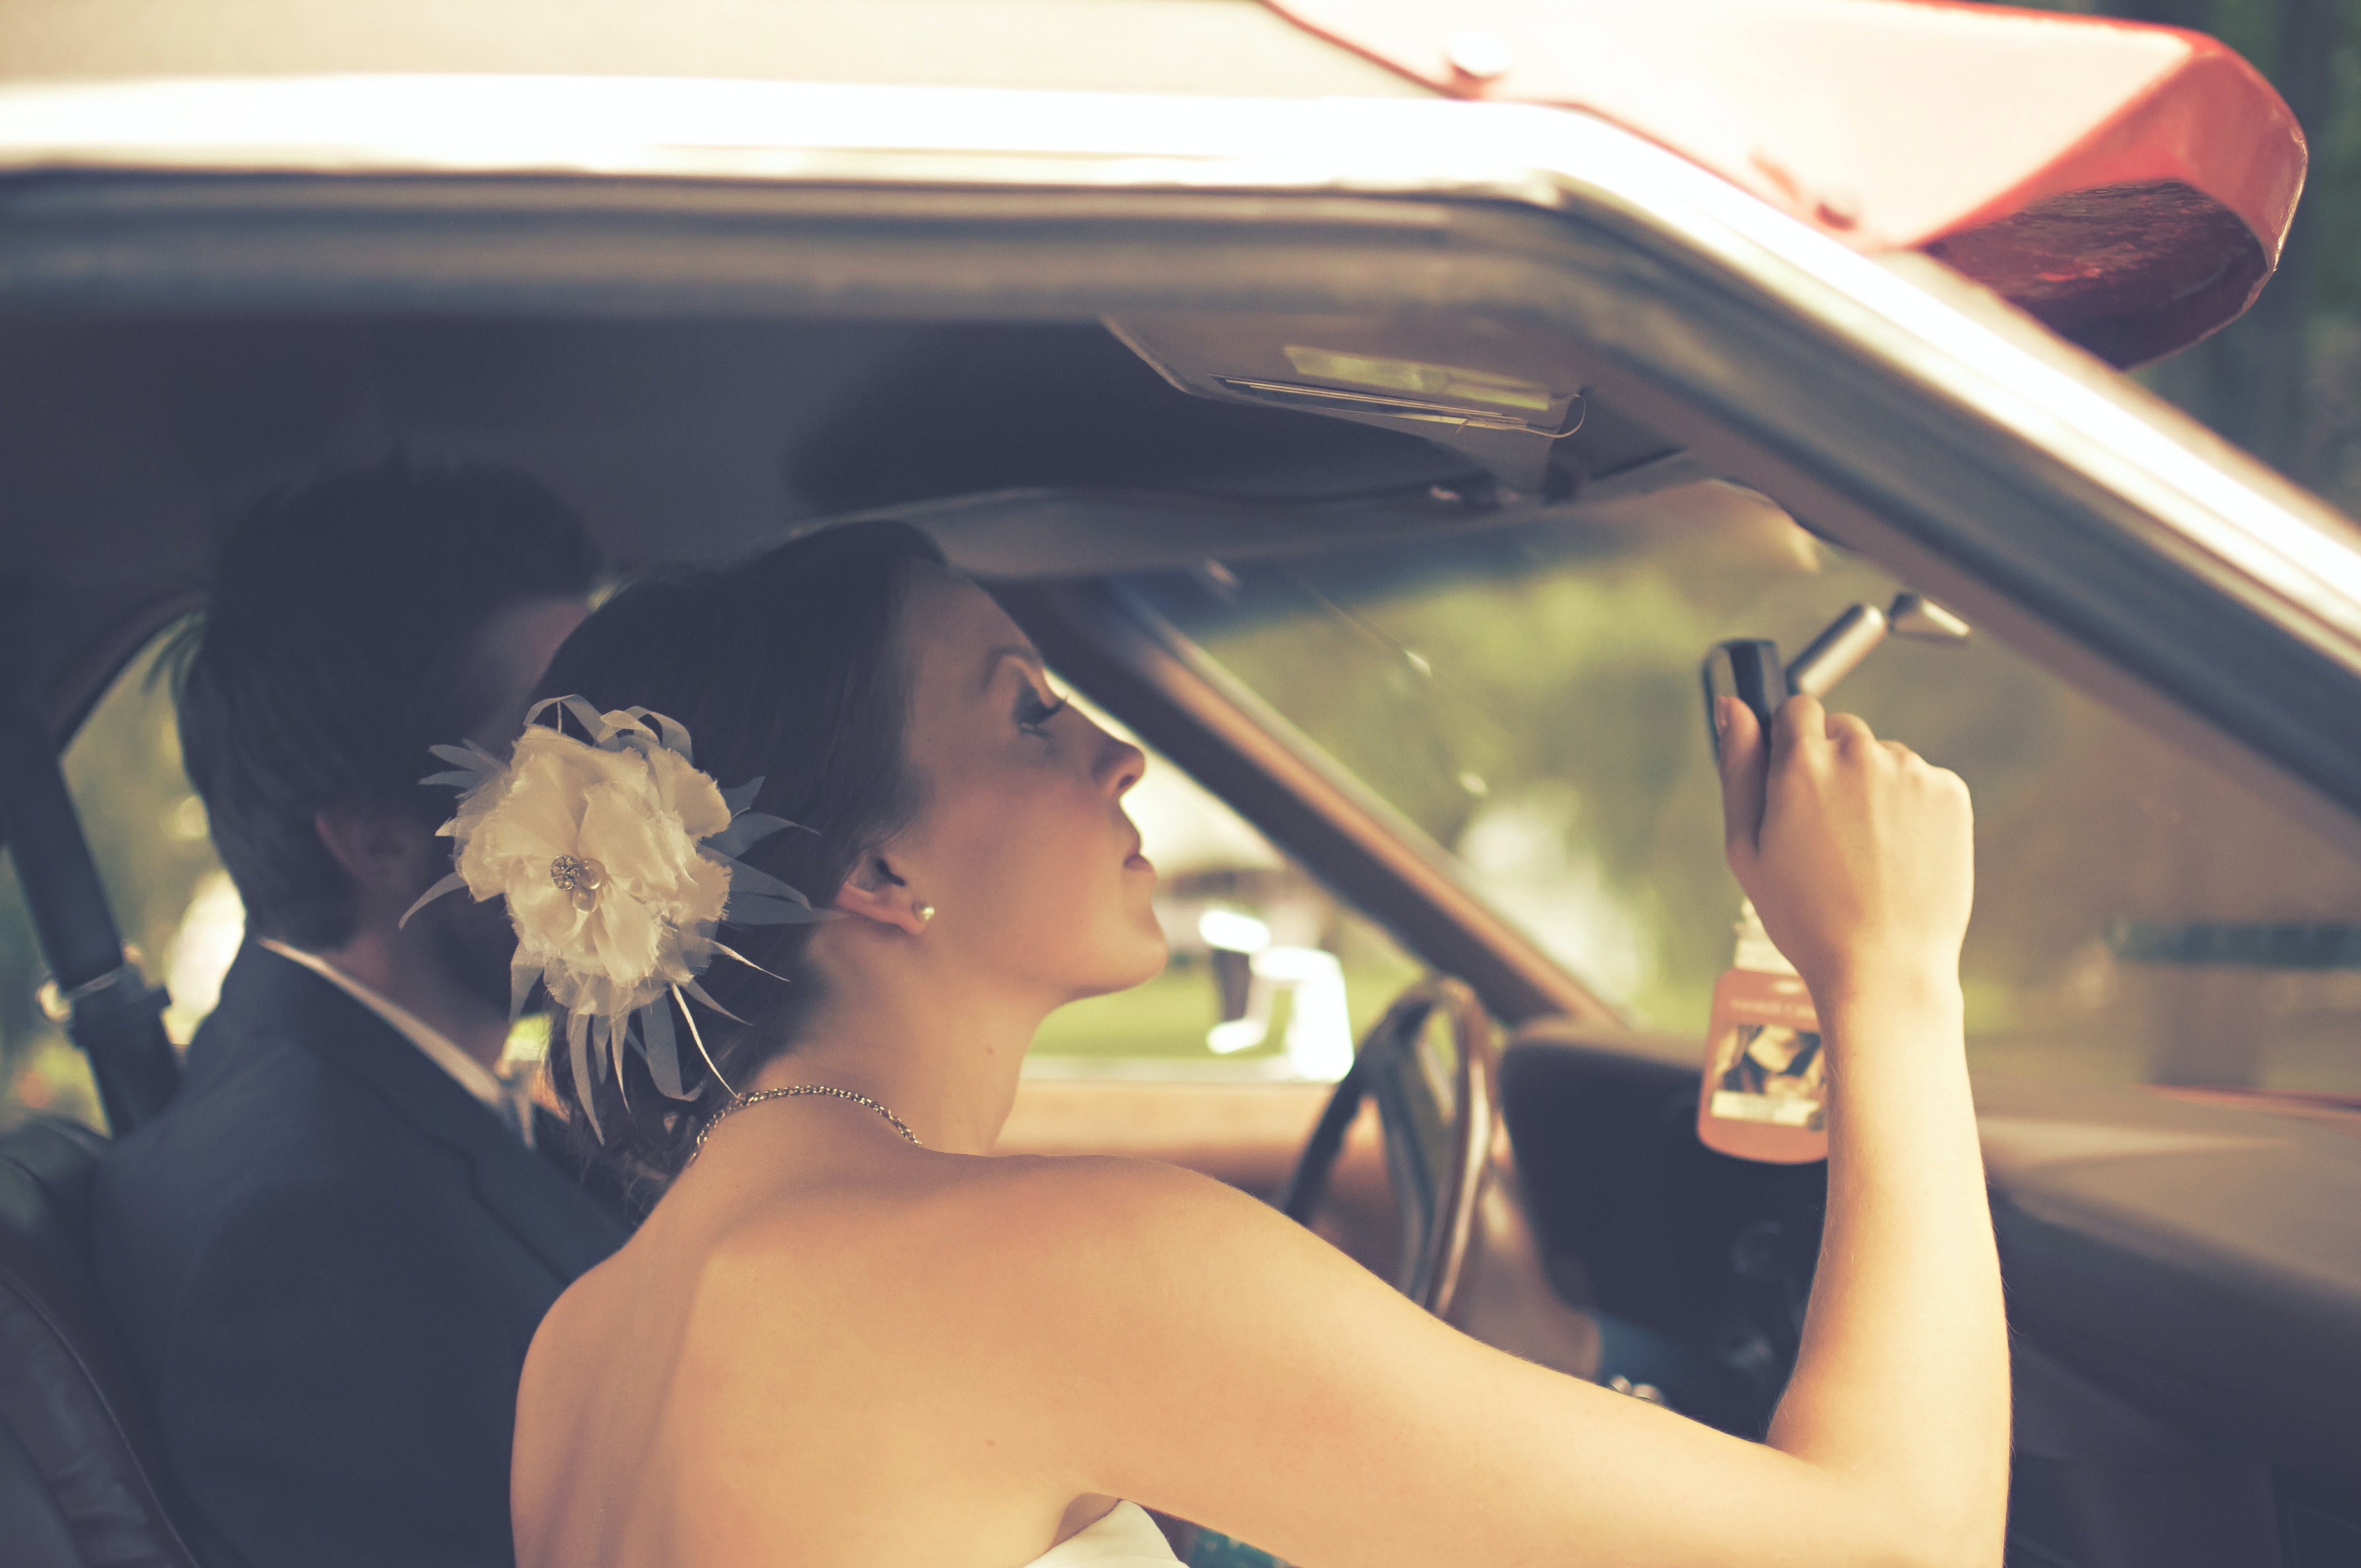 Wedding shot of young bride with flowerette and groom in suit sitting in car